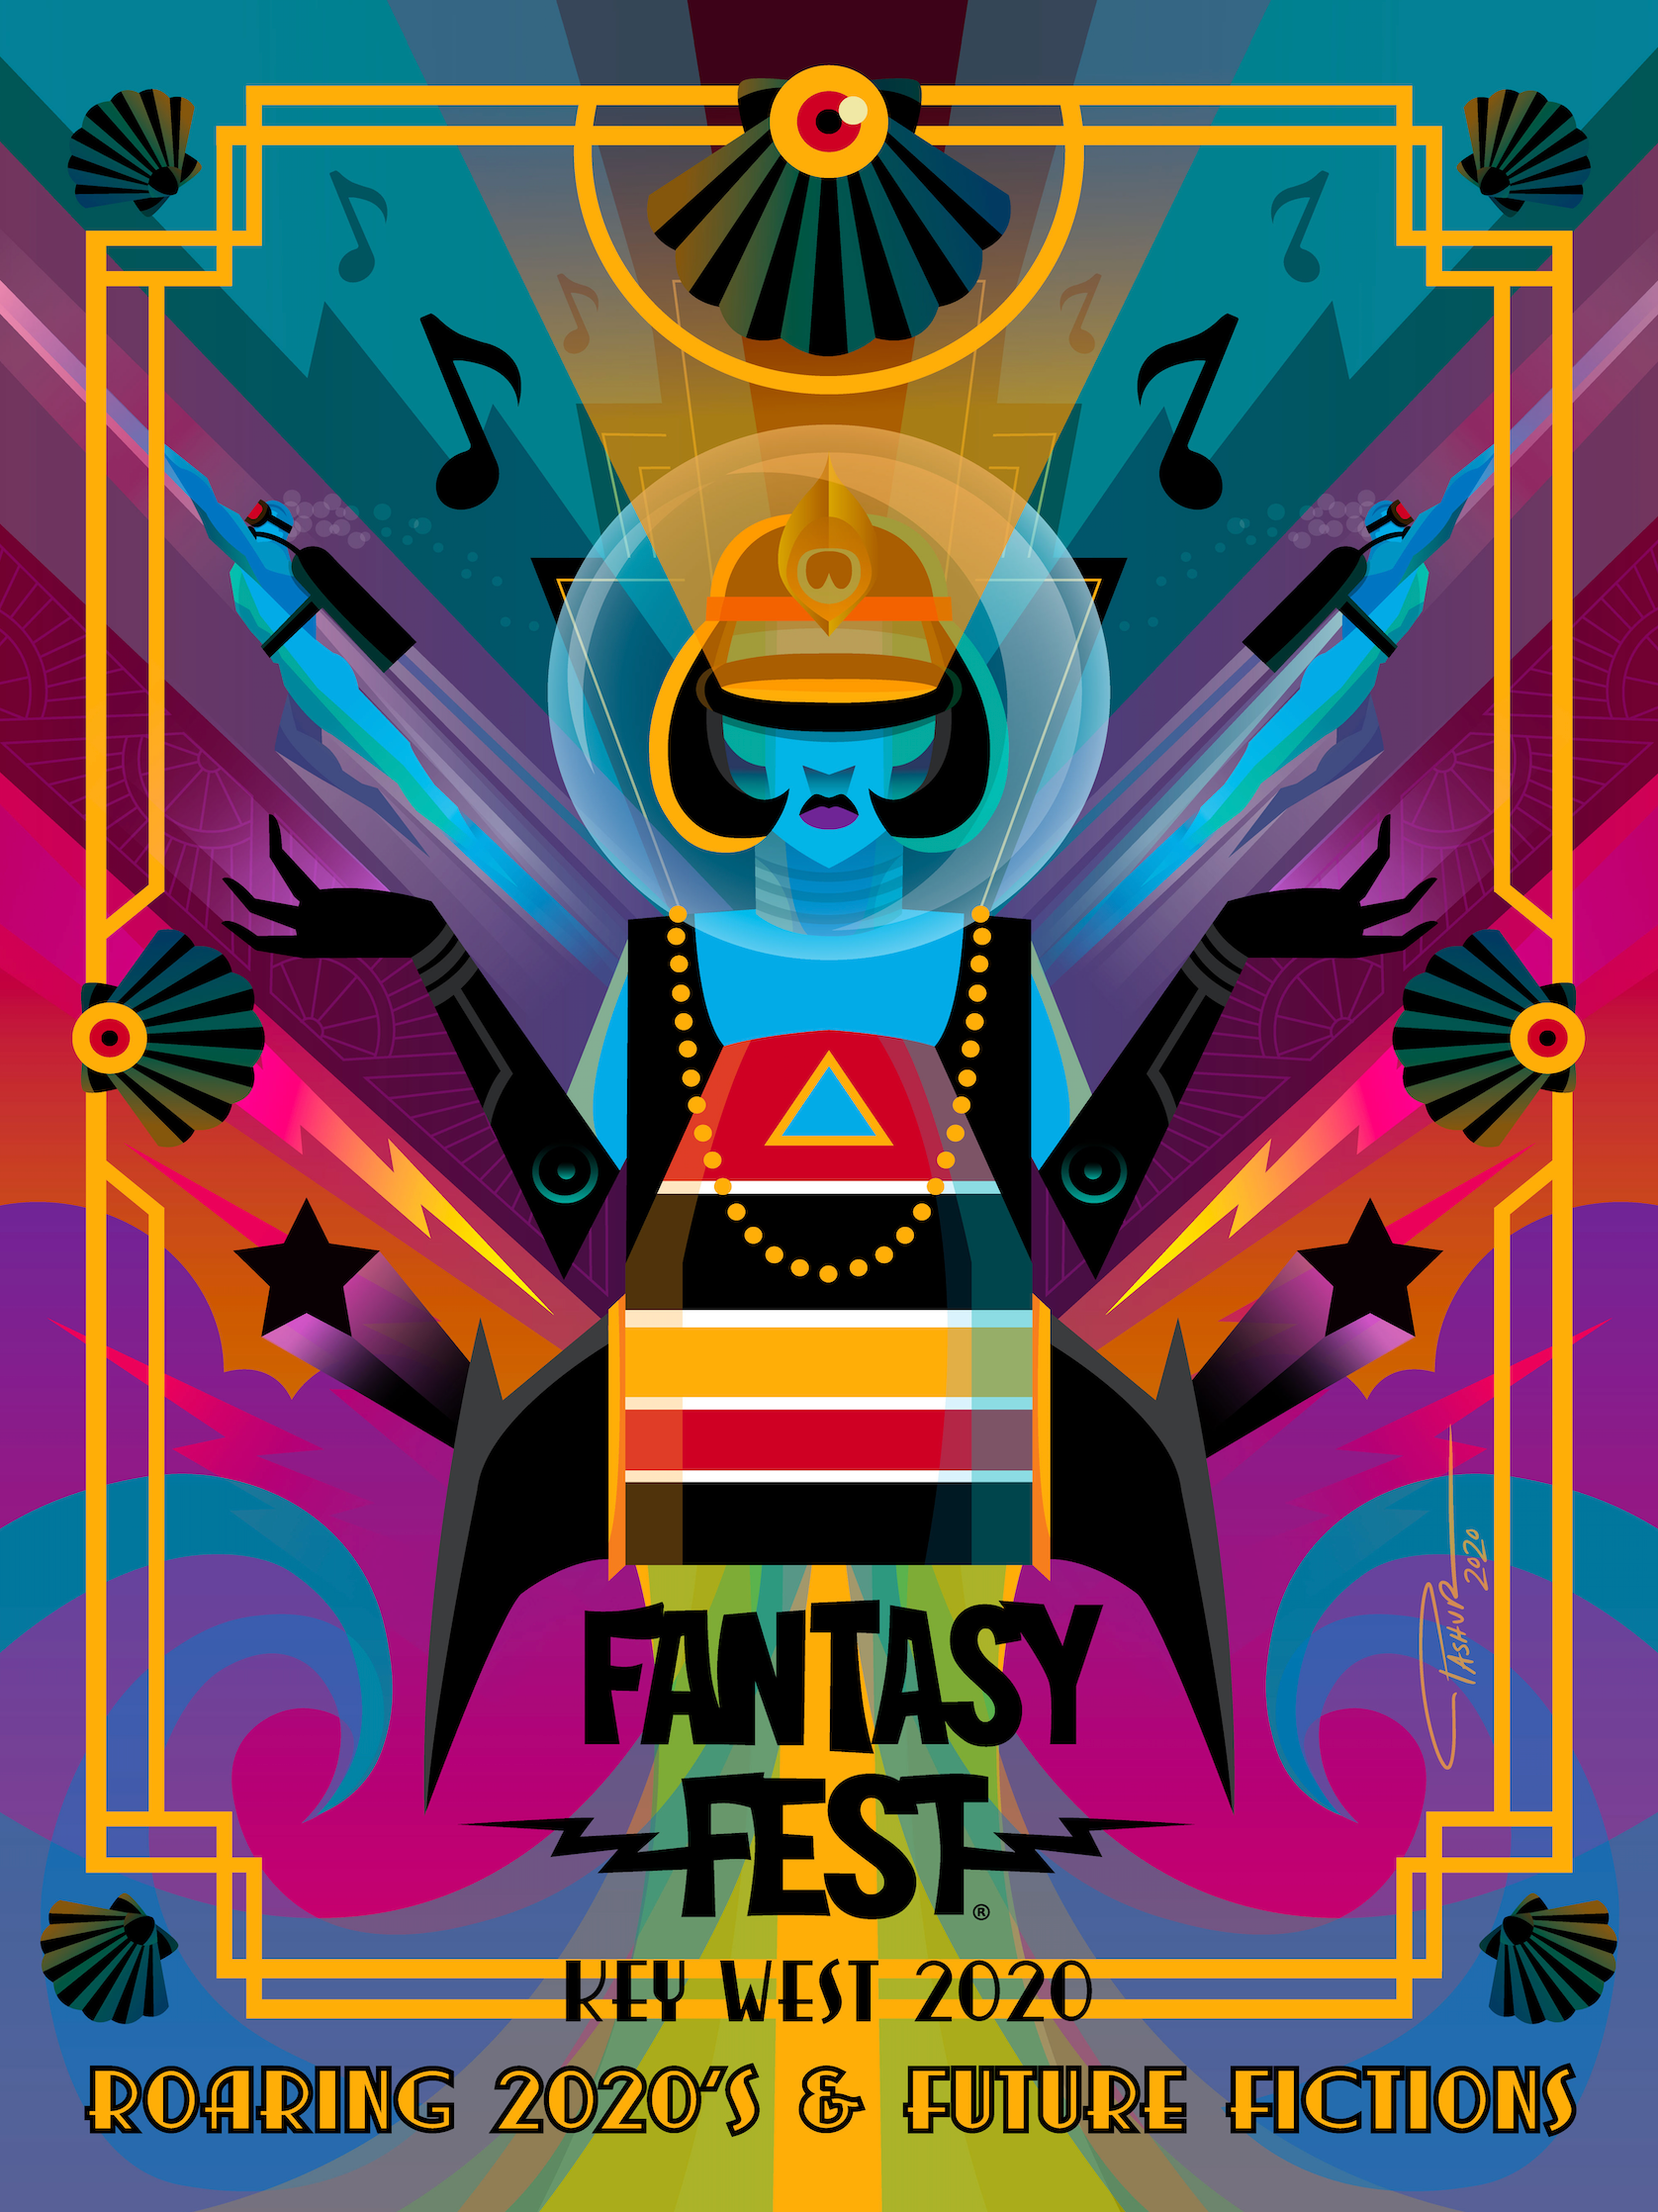 Official 2020 Fantasy Fest Poster Contest Winner by Pashur